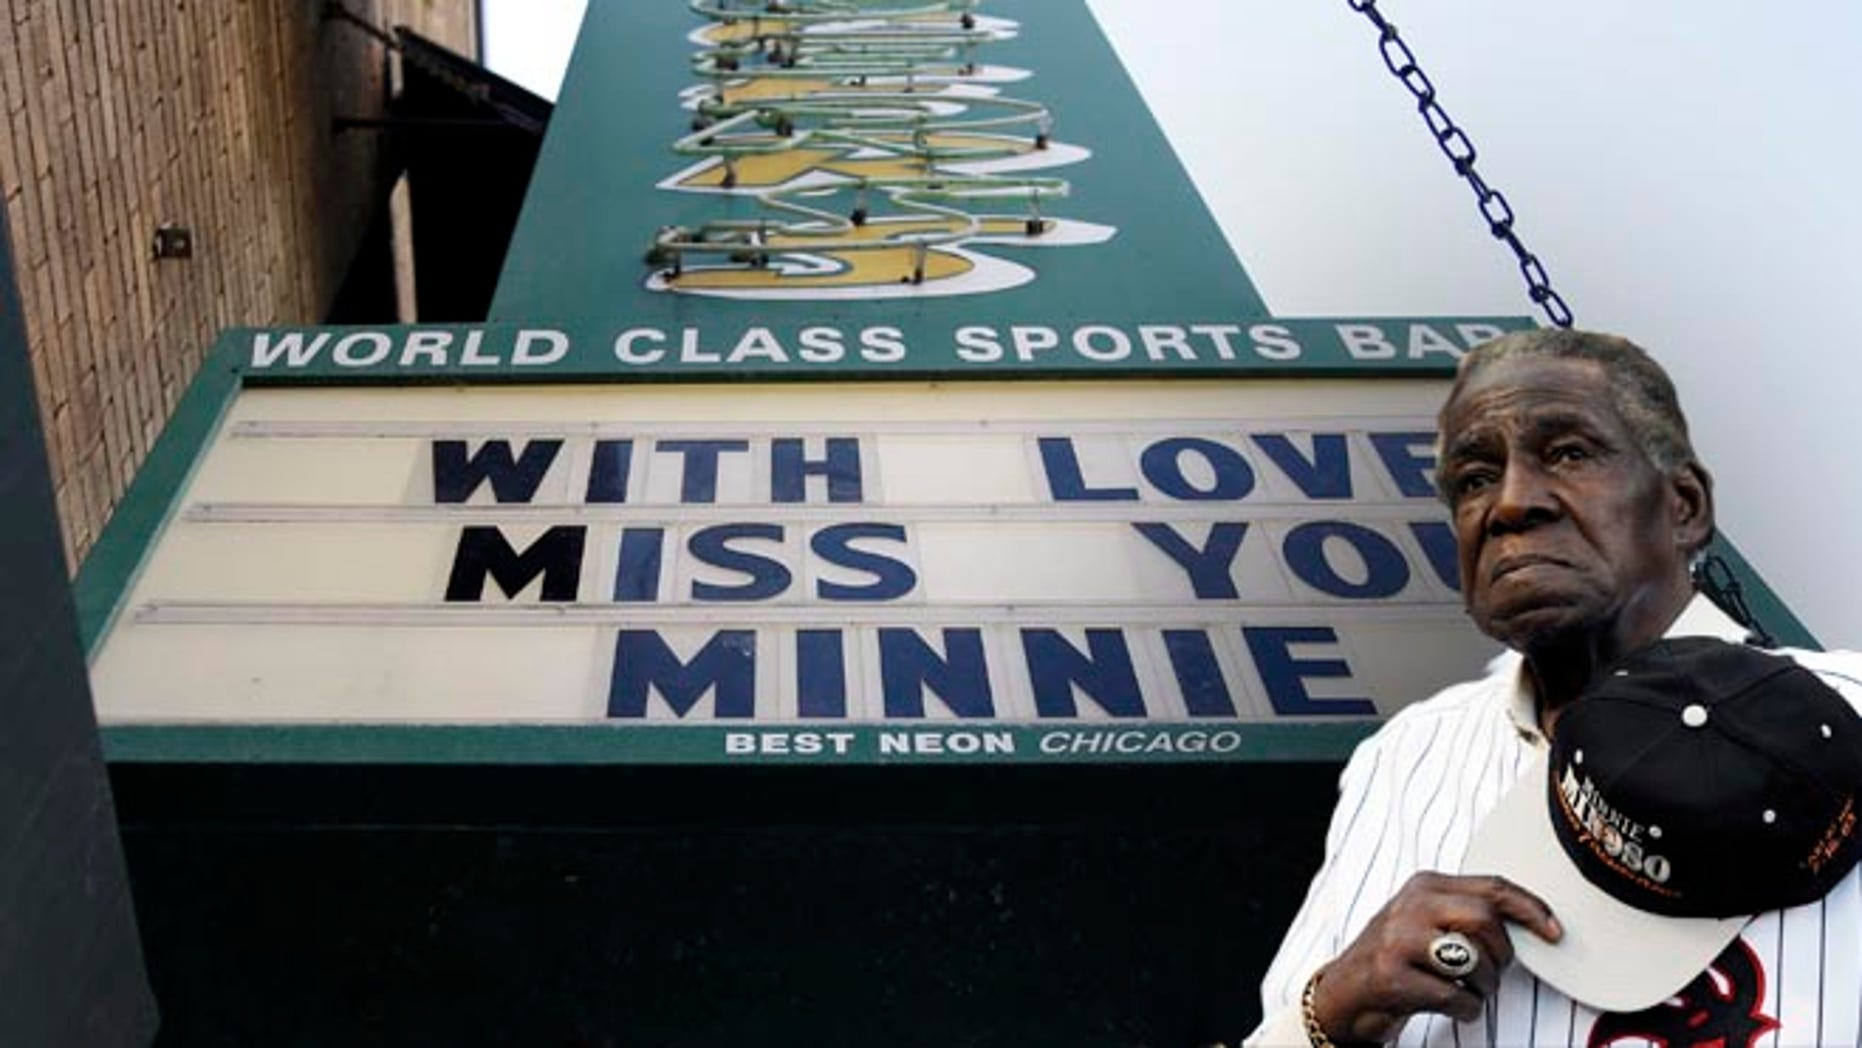 A sign displays at  Sluggers sports bar in honor of  Minnie Minoso on Sunday, March 1, 2015, in Chicago. Chicago White Sox legend Minnie Minoso passed away at age of 90. Minoso was the first black Cuban player in Major League Baseball and the first black player for the White Sox. (AP Photo/Nam Y. Huh)